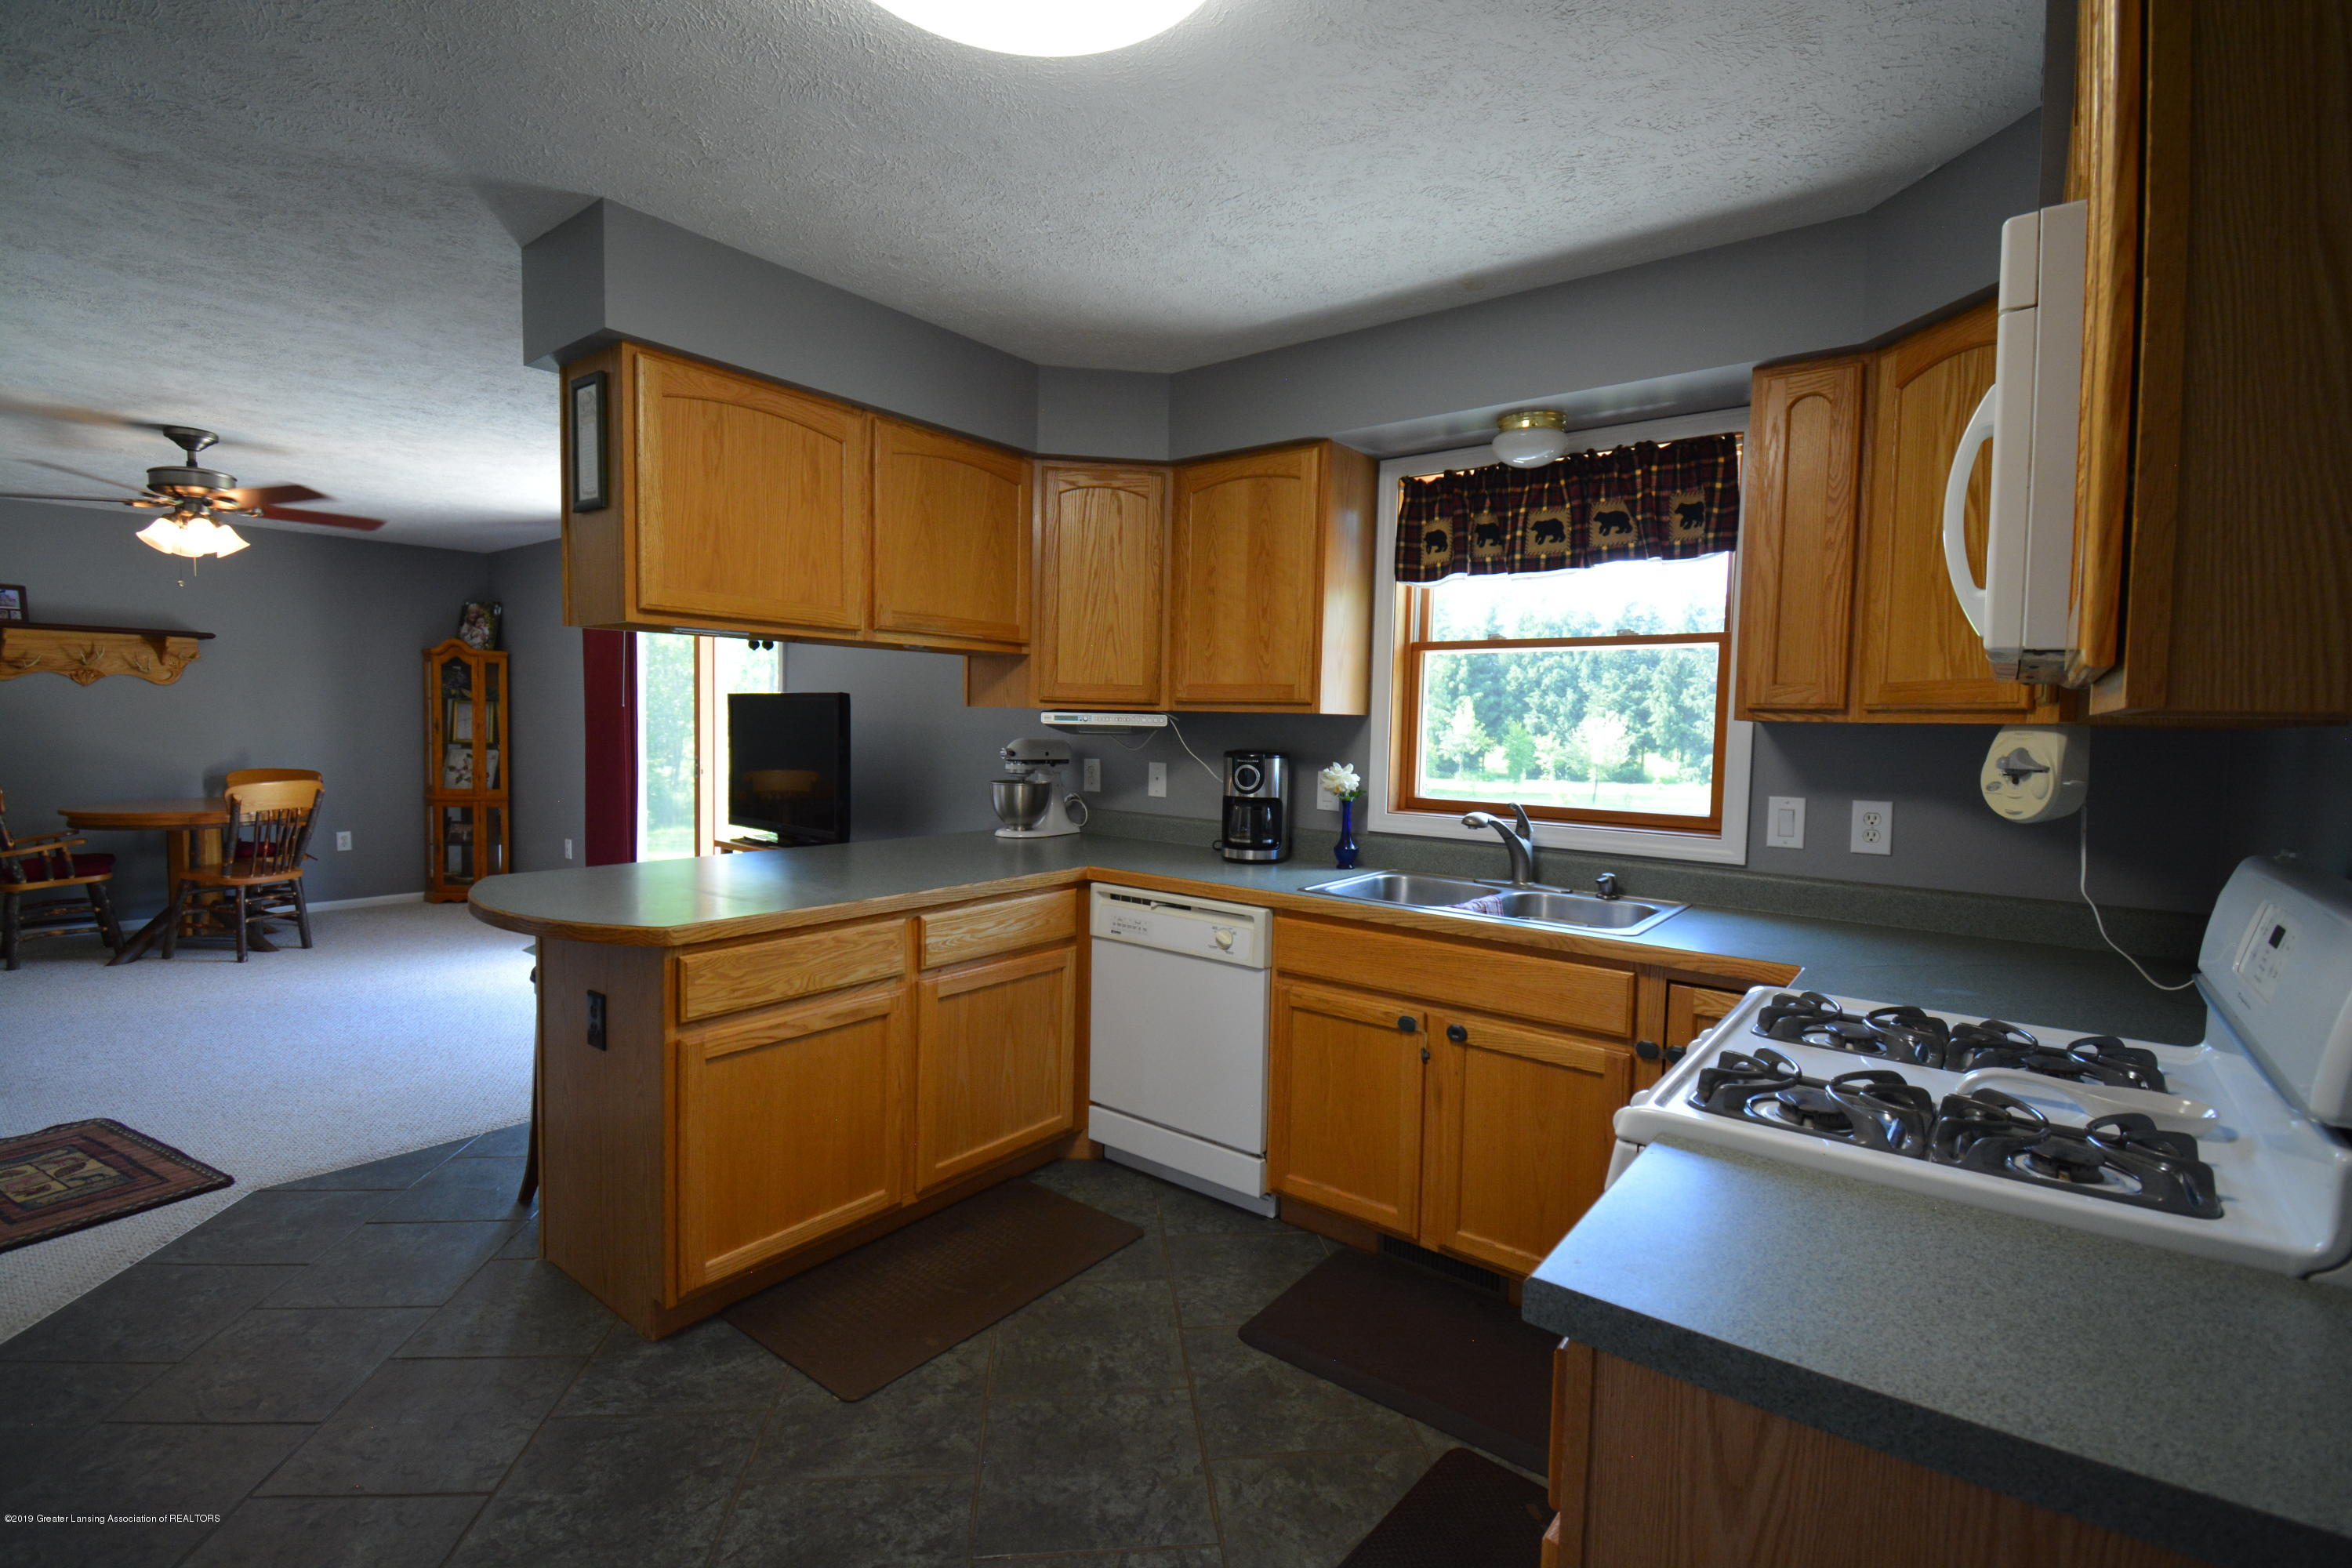 7459 Rossman Hwy - Kitchen View 4 - 15